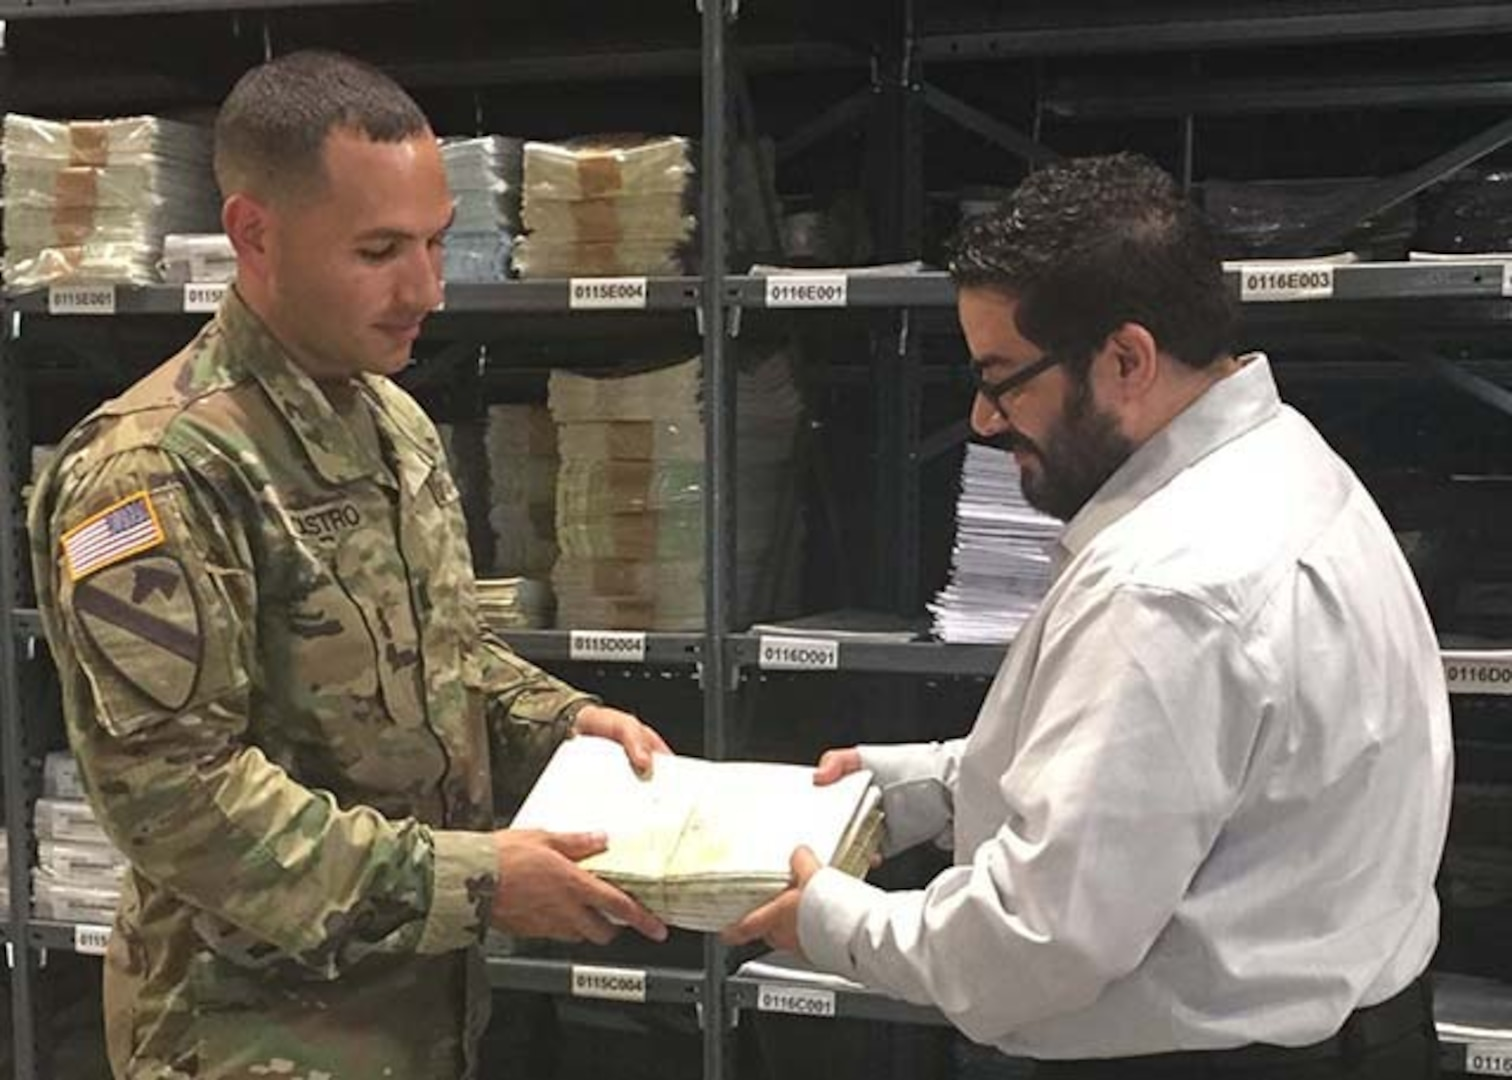 Flight Information Publications Program Manager Julio Bultron, right, hands off an aeronautical map that was printed on demand to Army Captain Joel Castro from the 3-82 General Support Aviation Battalion, 82nd Combat Aviation Brigade, 82nd Airborne Division, Sept. 14, 2016.  Bultron is helping to staff the new Geospatial Intelligence - Forward Presence Team on Fort Bragg, North Carolina.  Defense Logistics Agency Aviation Customer Operations Directorate's Mapping Division will host a facility open house Sept. 28 from 10 a.m. to 2 p.m. at the U.S. Army Forces Command Intelligence Readiness and Operations Center on Fort Bragg, North Carolina.